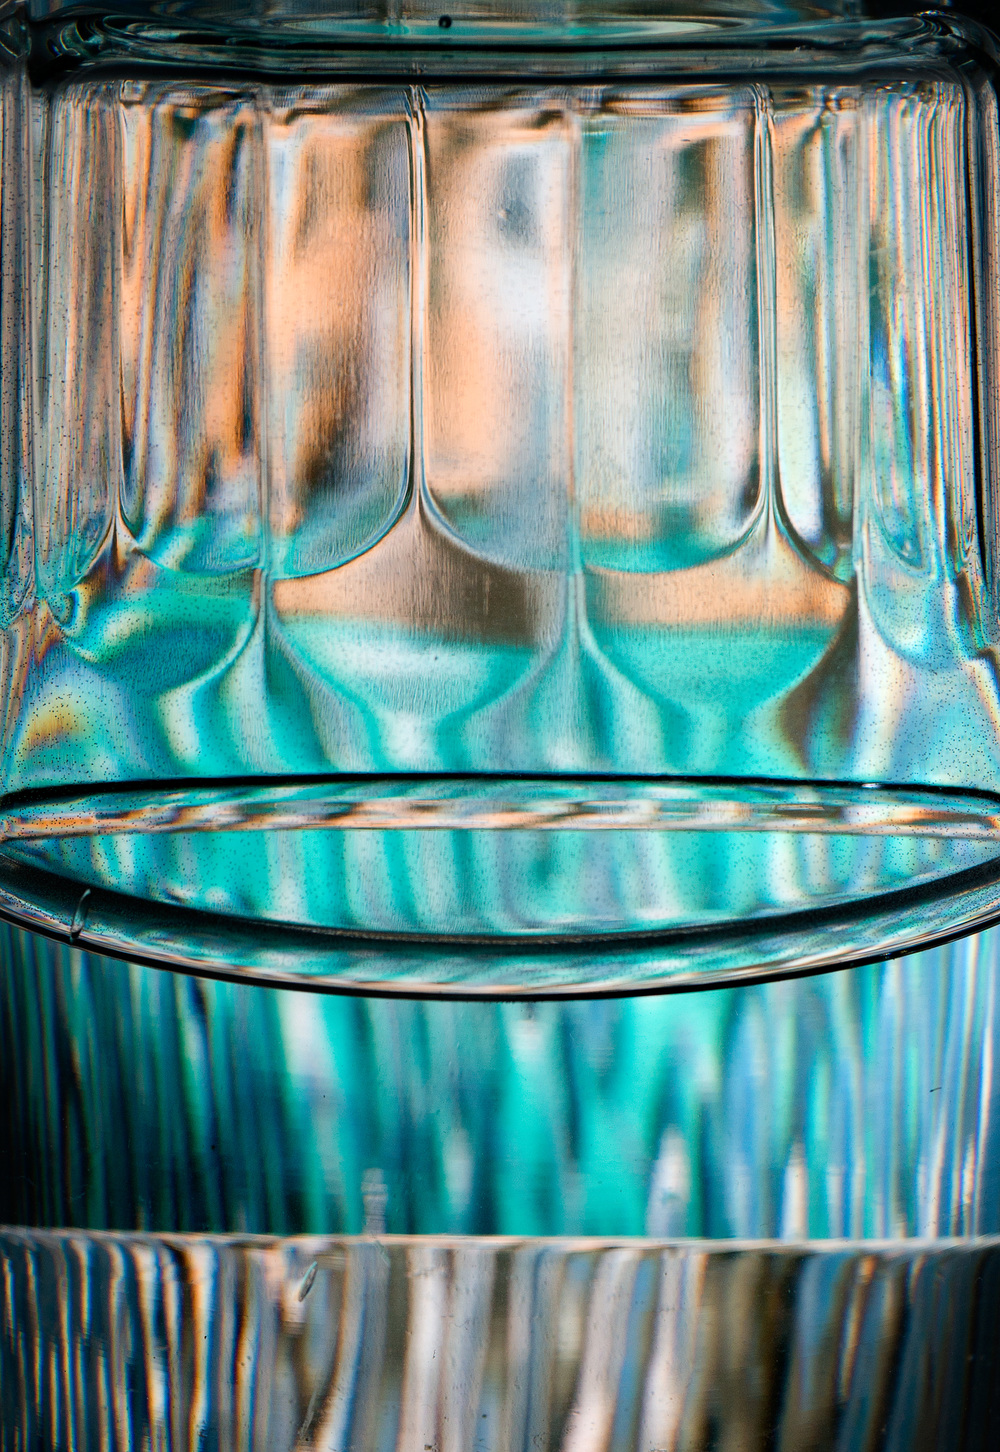 Refraction Study III,  2015 Archival pigment print 20x30 inches